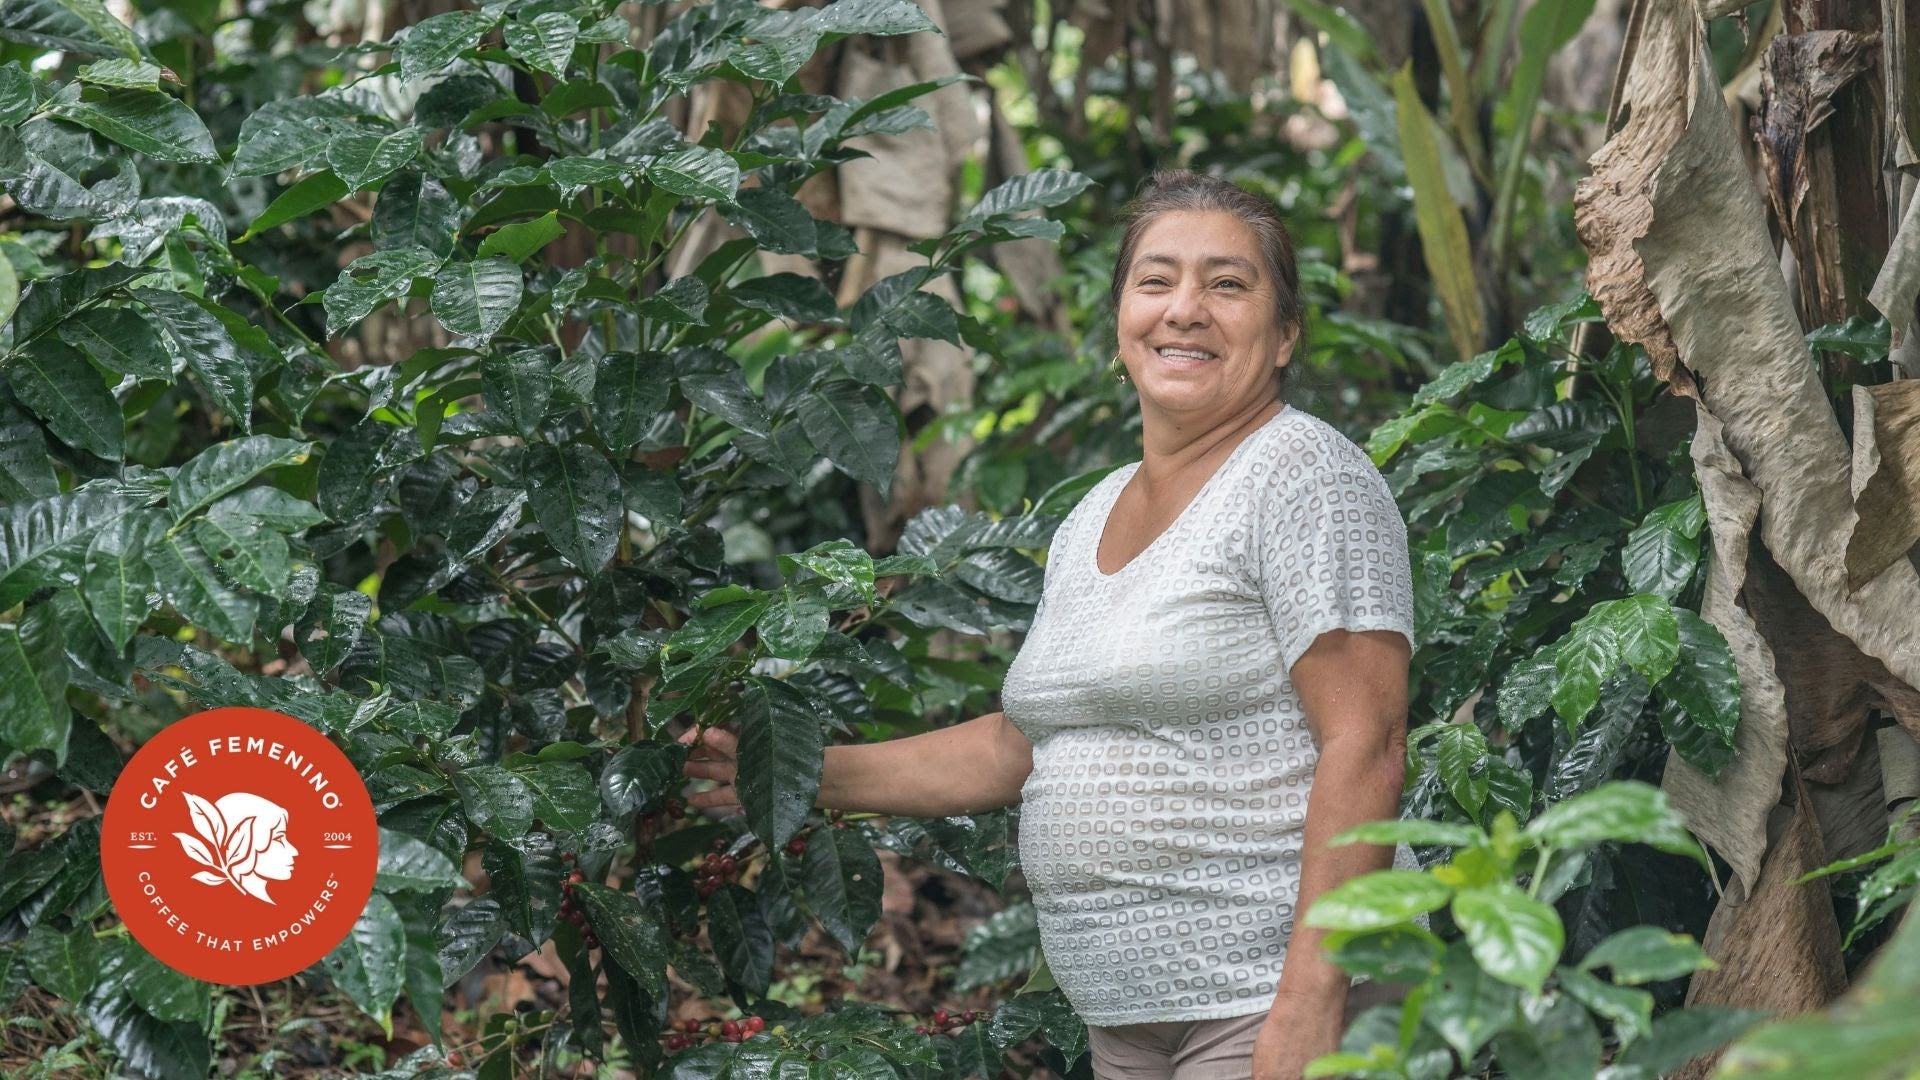 Café Femenino combines specialty coffee with social change for women, including these farmers from Inza, Cuaca and the Café Femenino Colombia Program. Image courtesy of Fair Trade USA.